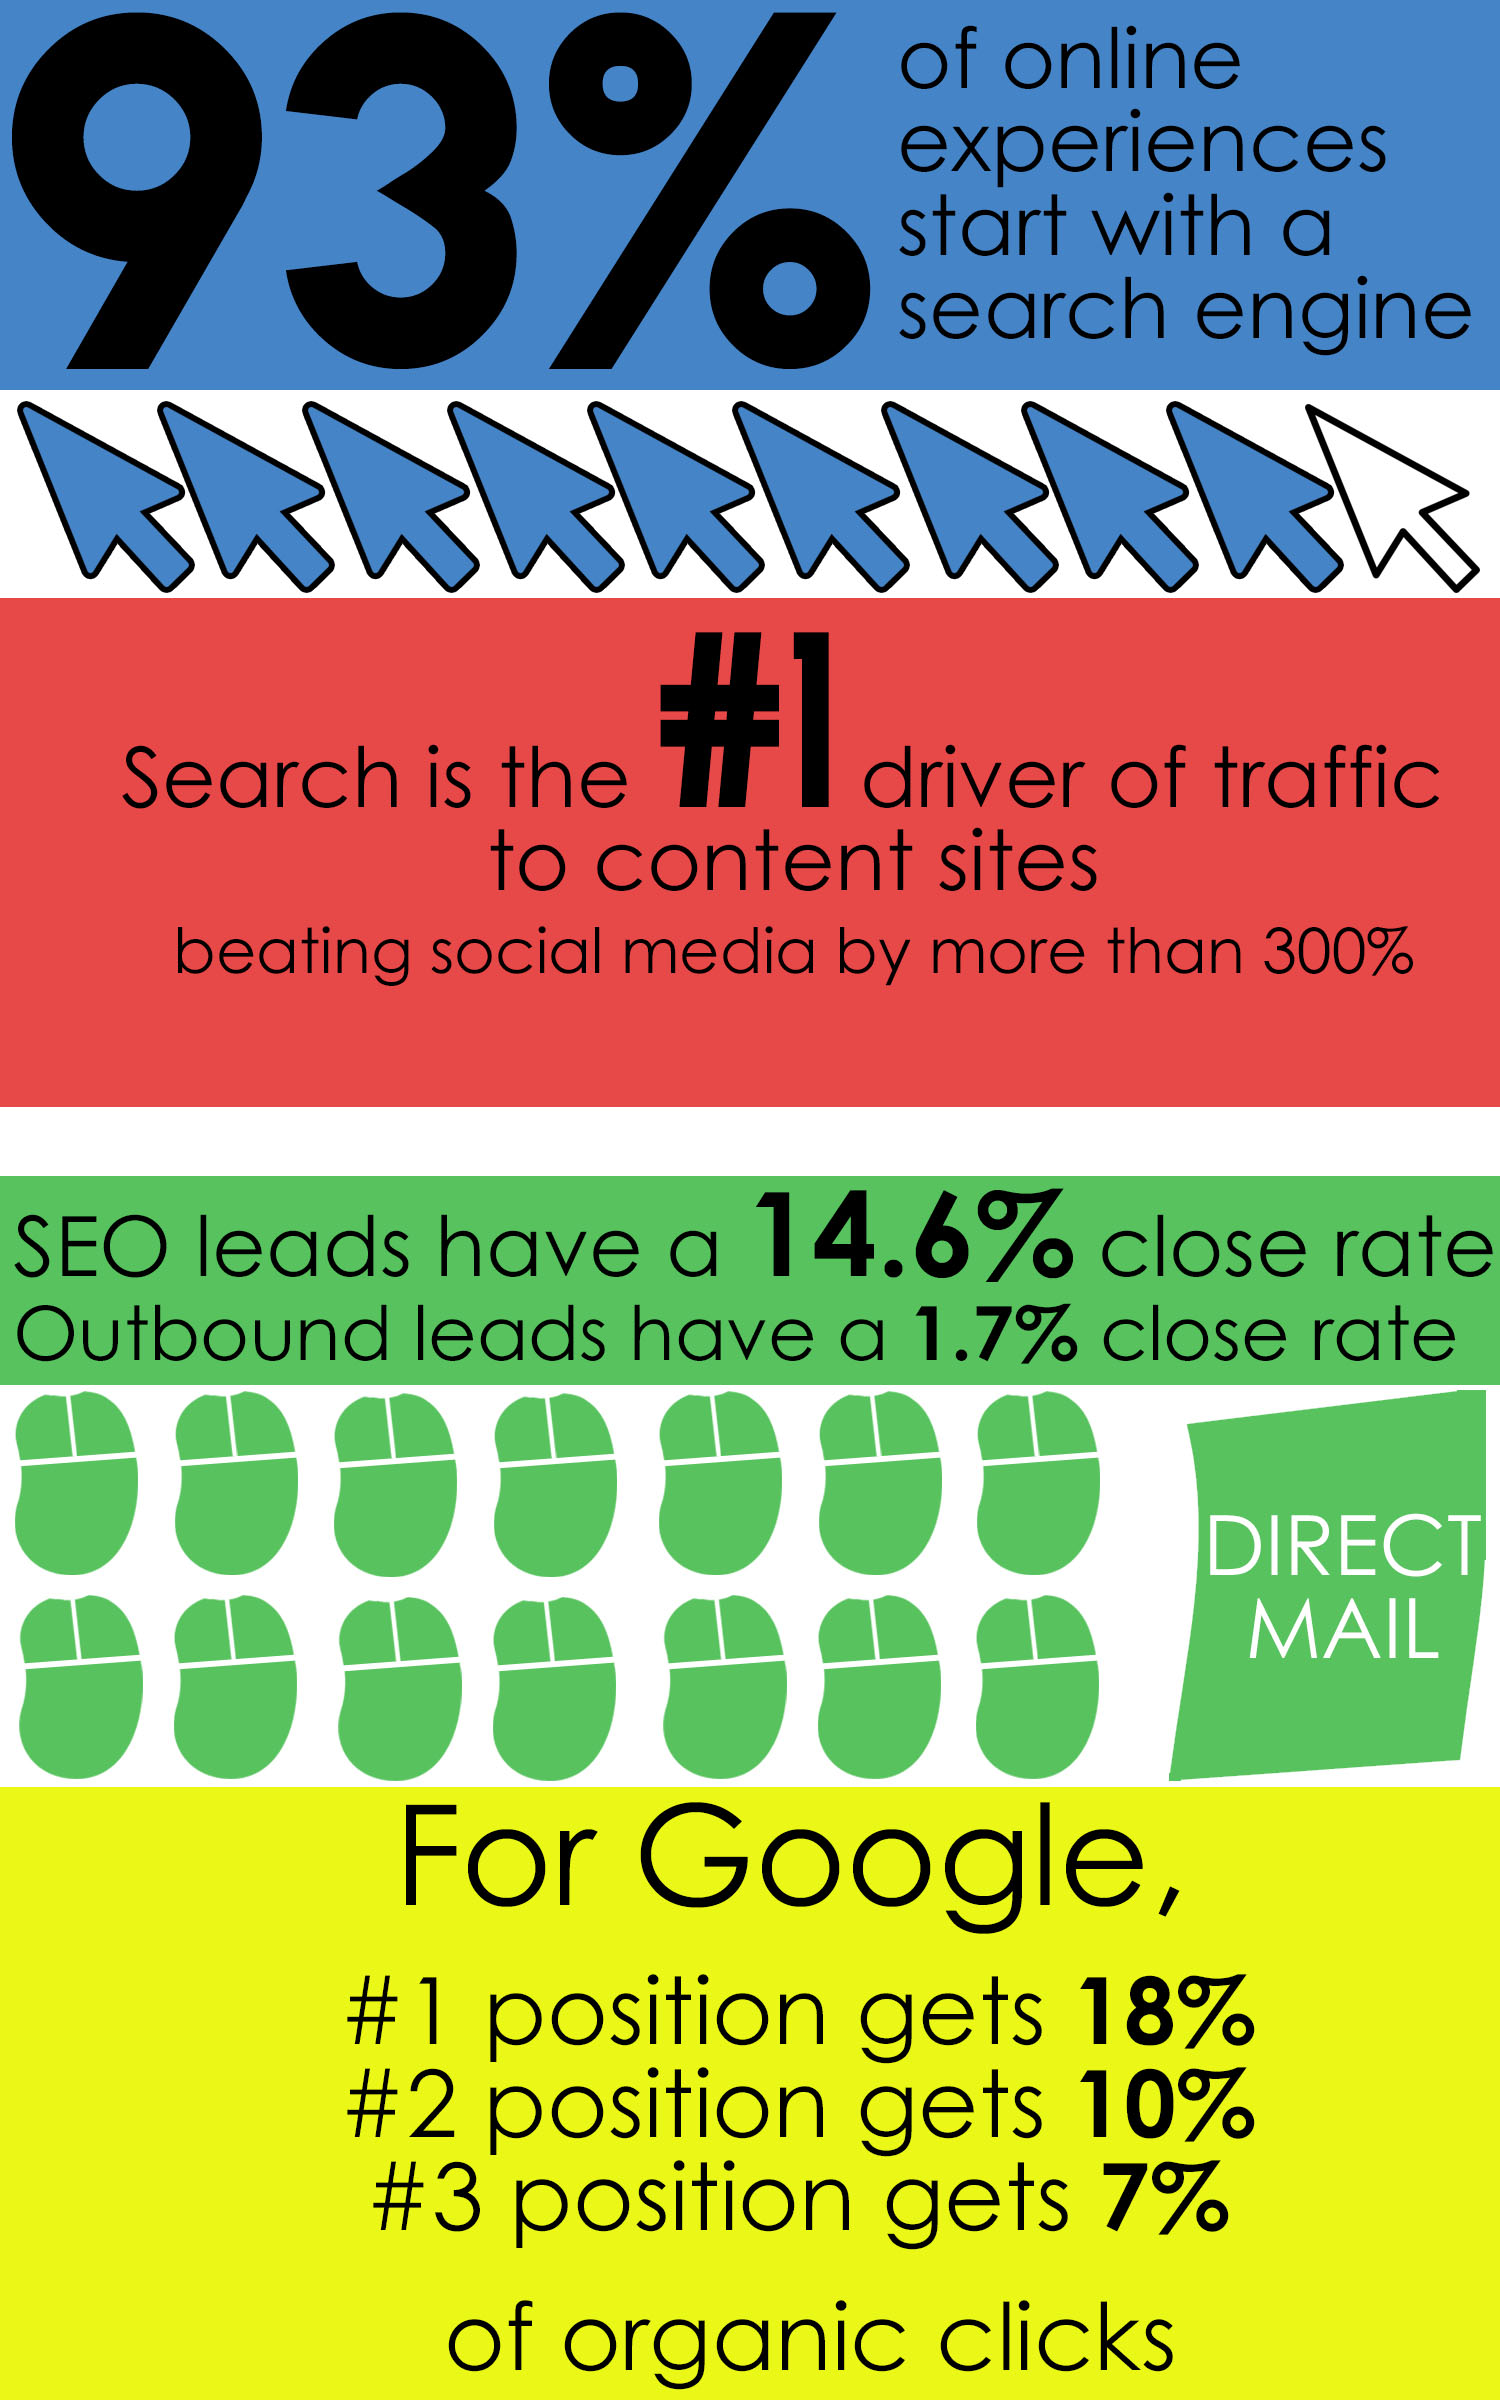 An infographic with various SEO facts